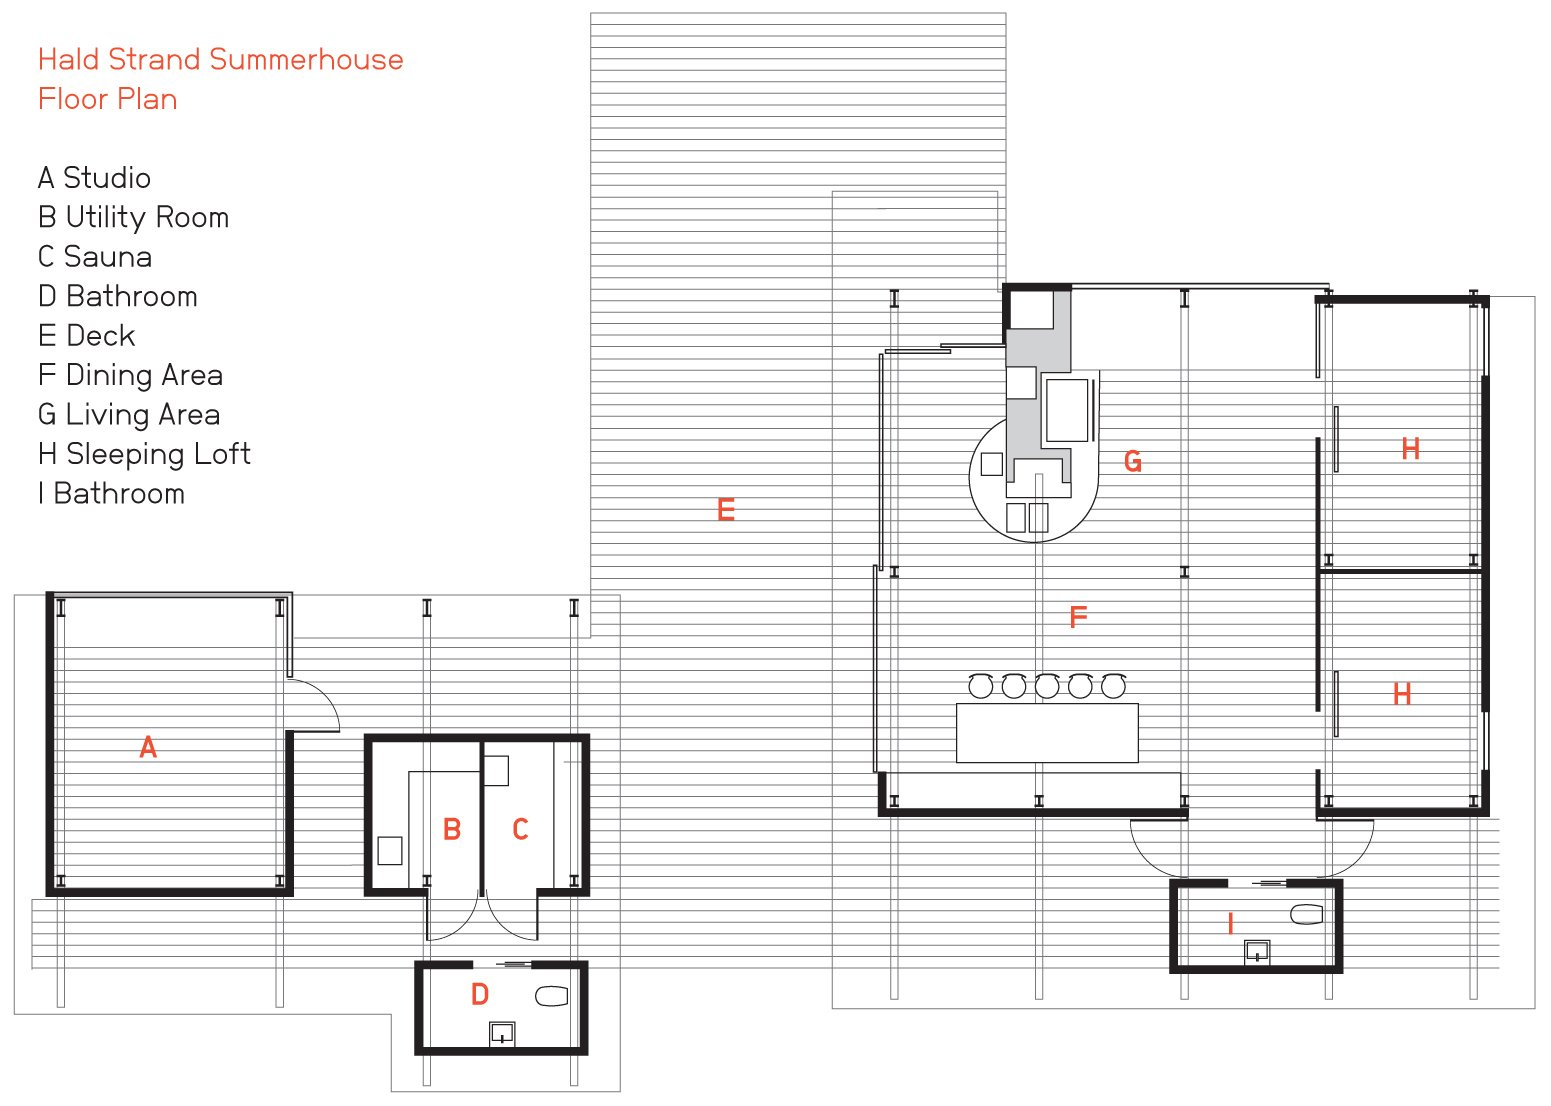 The Hald Strand Summerhouse floor plan.  Photo 3 of 5 in A Playful Summer Home with Some Serious Angles